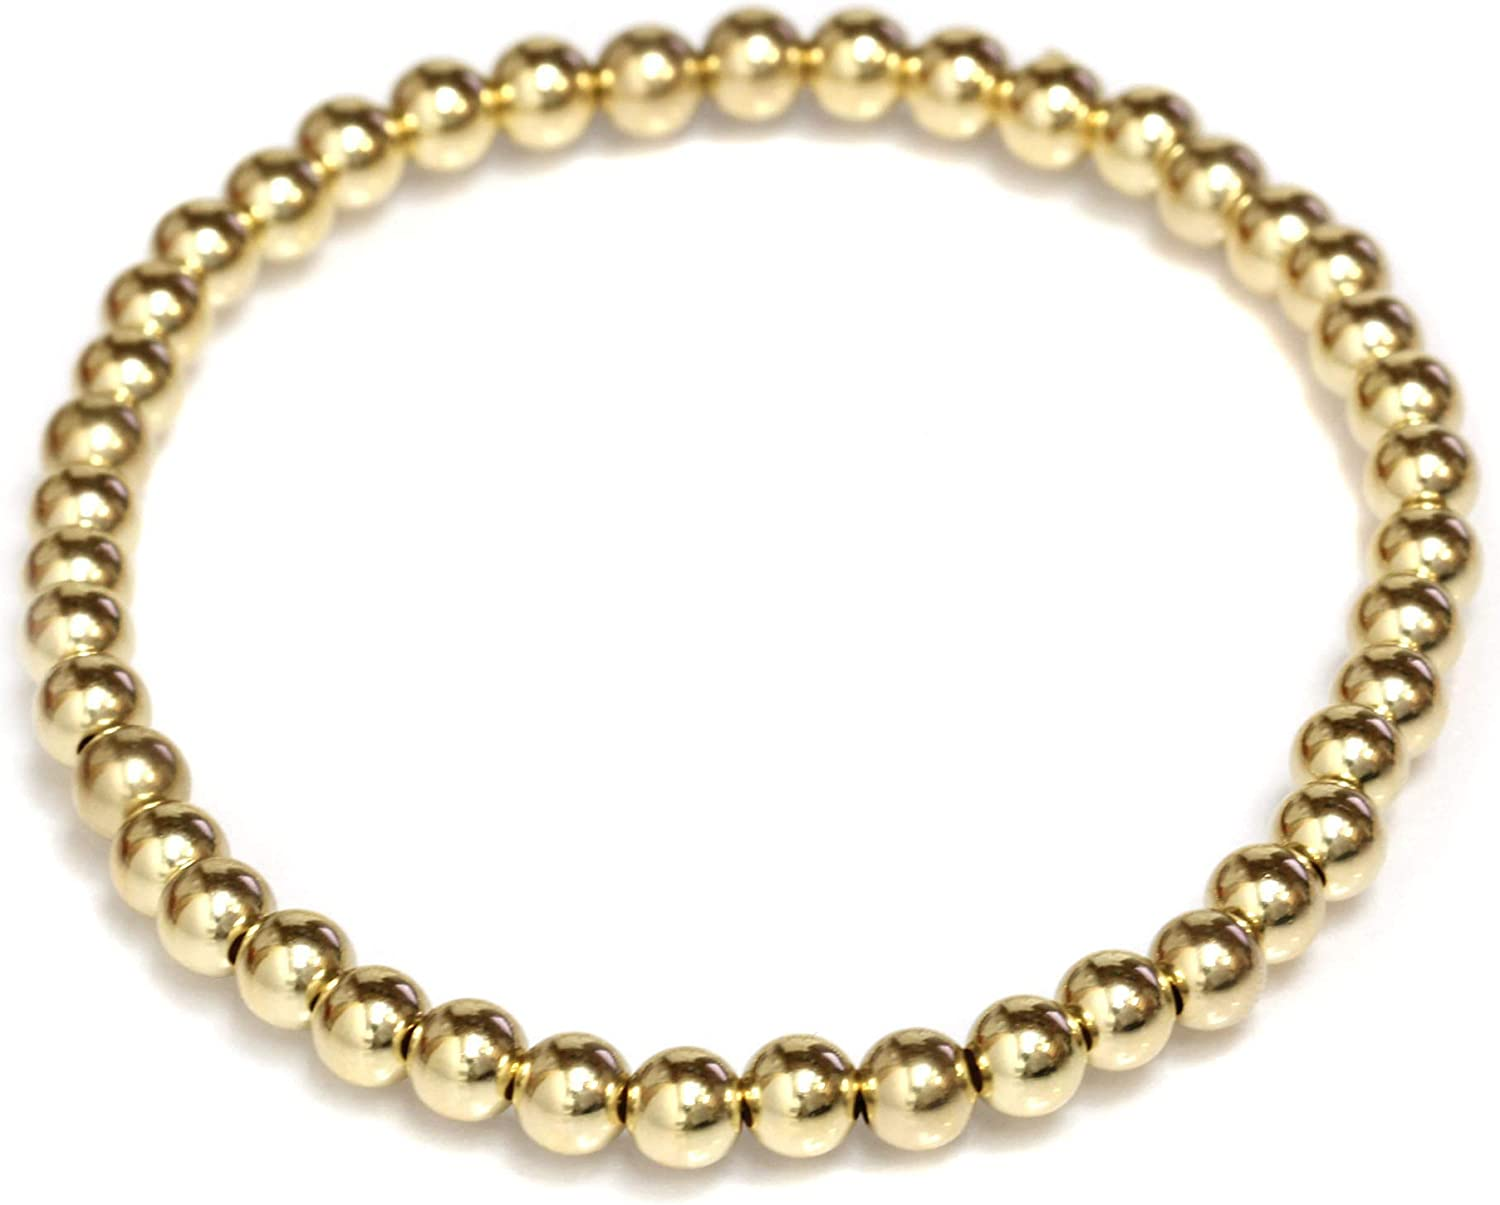 Sale item Seven Seas Pearls Bead Stretch Gold Elastic Yell Filled Bracelet Albuquerque Mall